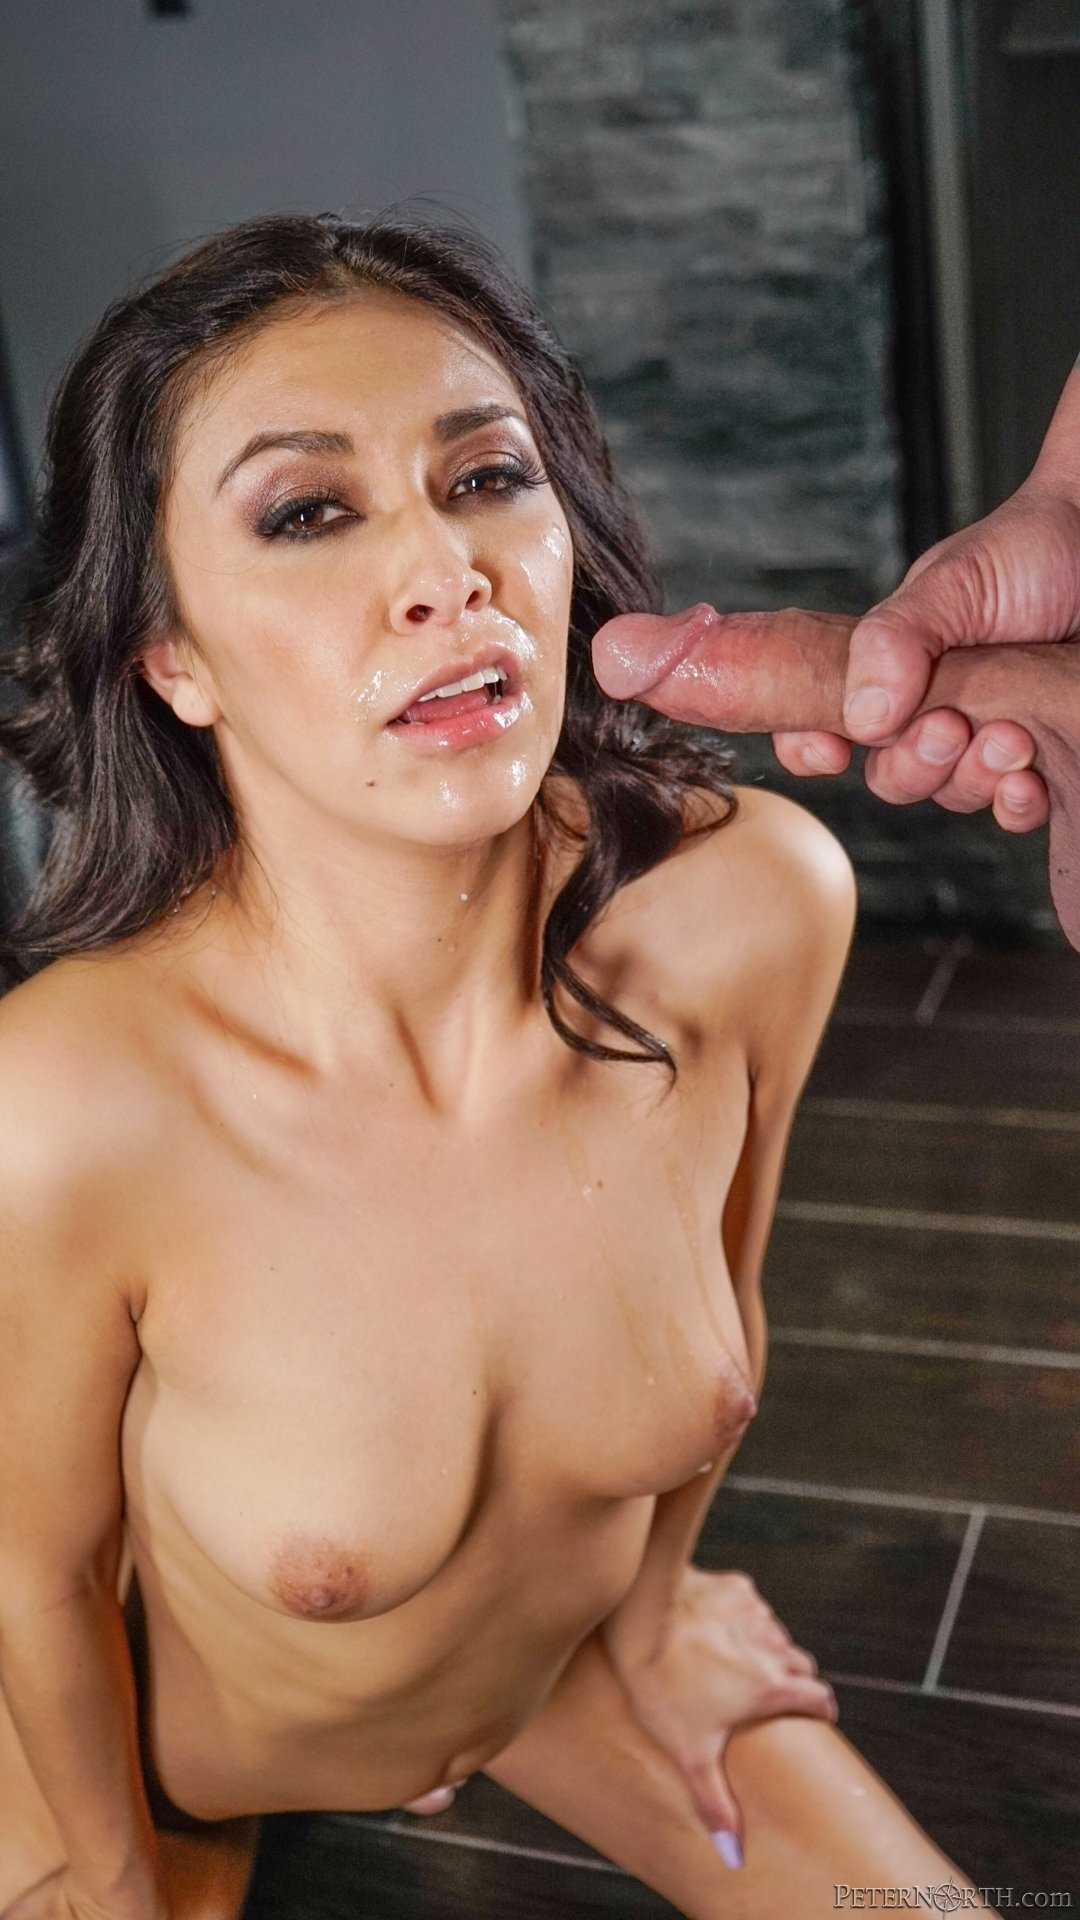 Brunette Cheryl takes facial after gagging mutant cock in the house